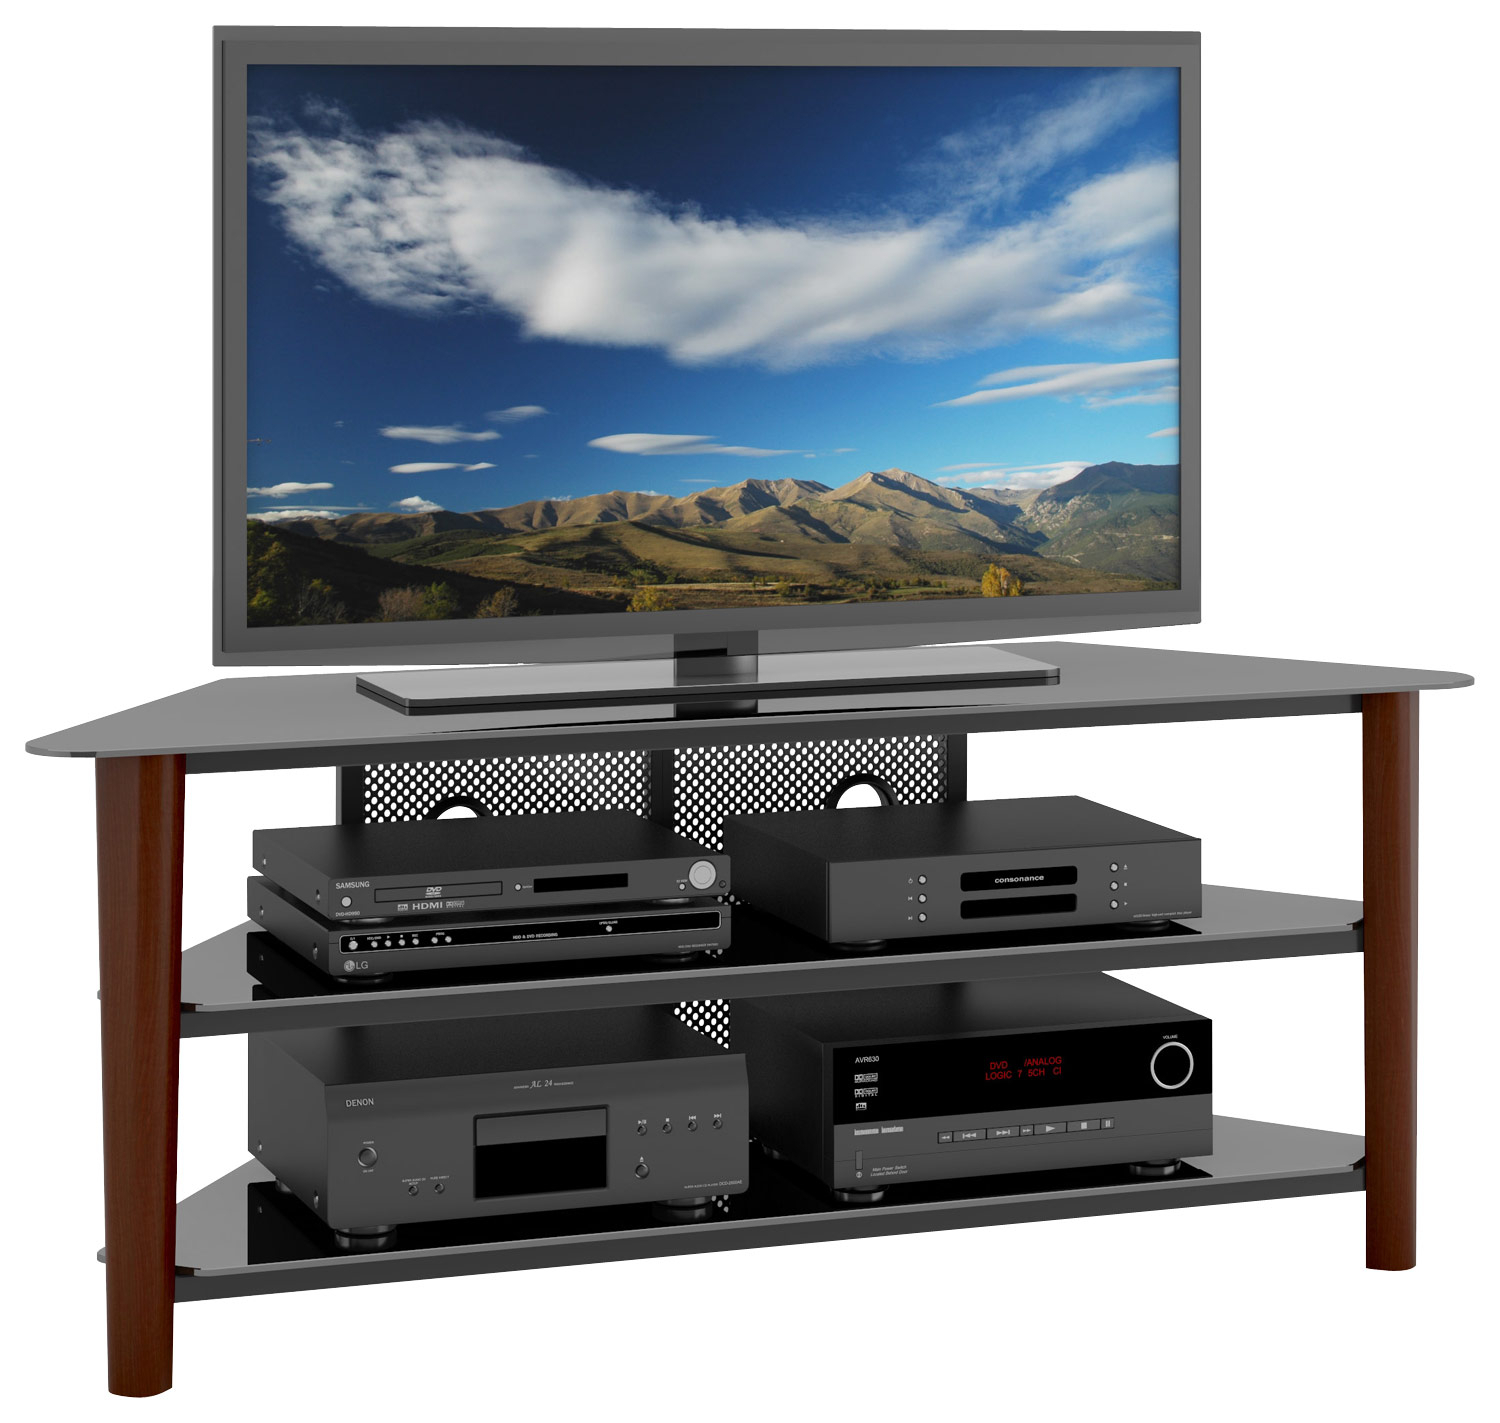 Corliving Tv Stand For Most Flat Panel Tvs Up To 68 In Easel Tv Stands For Flat Screens (View 12 of 15)